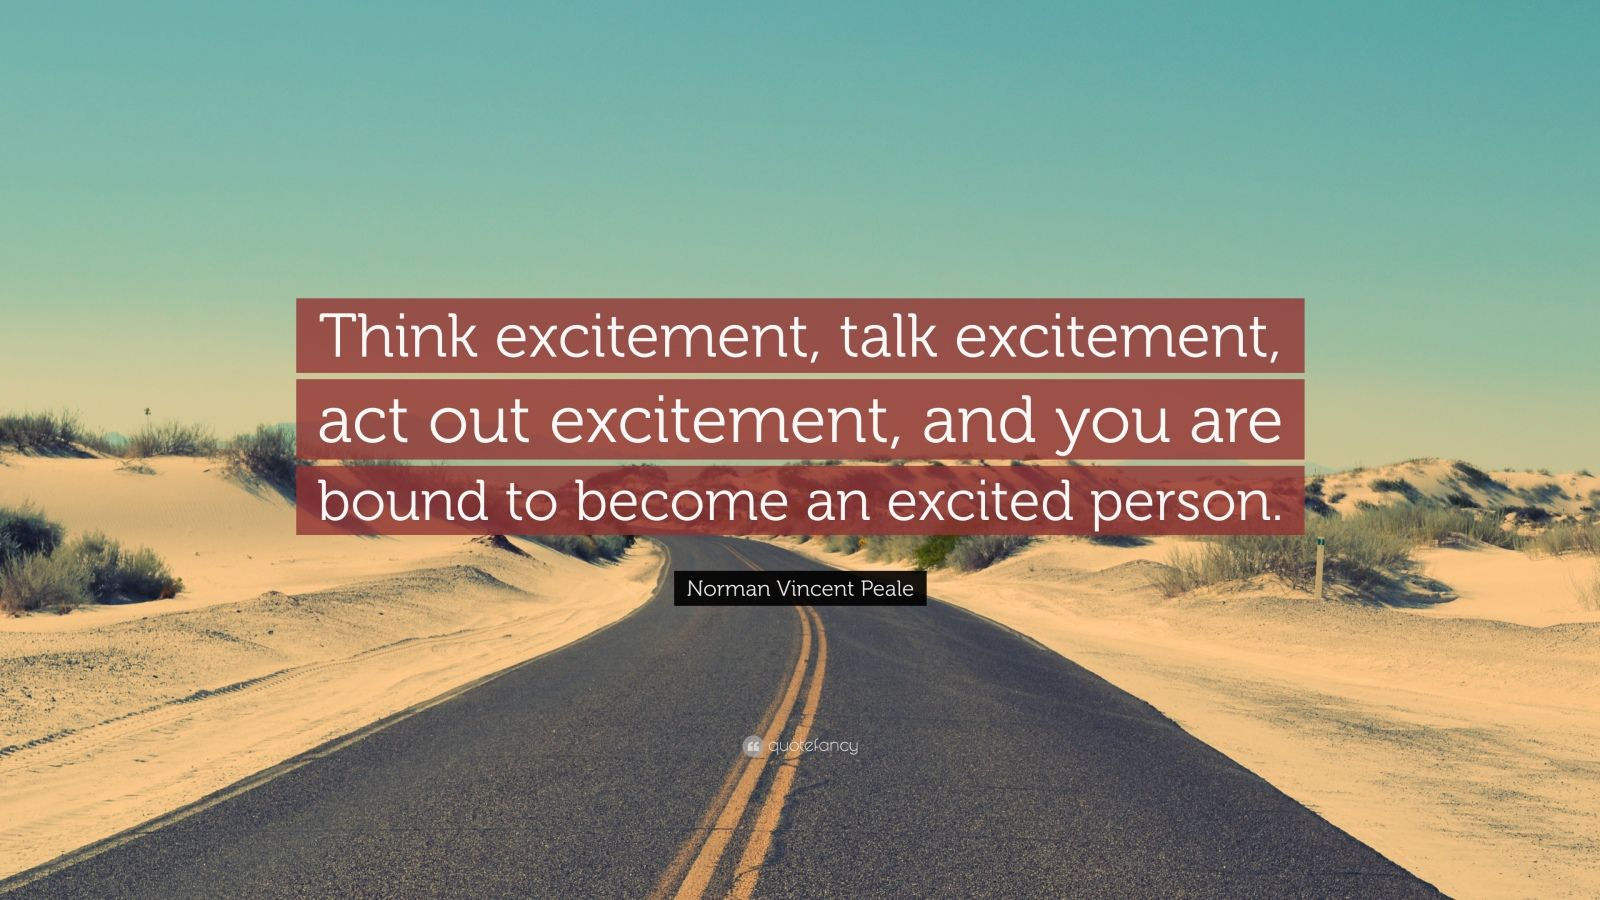 """Norman Vincent Peale Quote: """"Think excitement, talk excitement, act out excitement, and you are bound to become an excited person."""""""